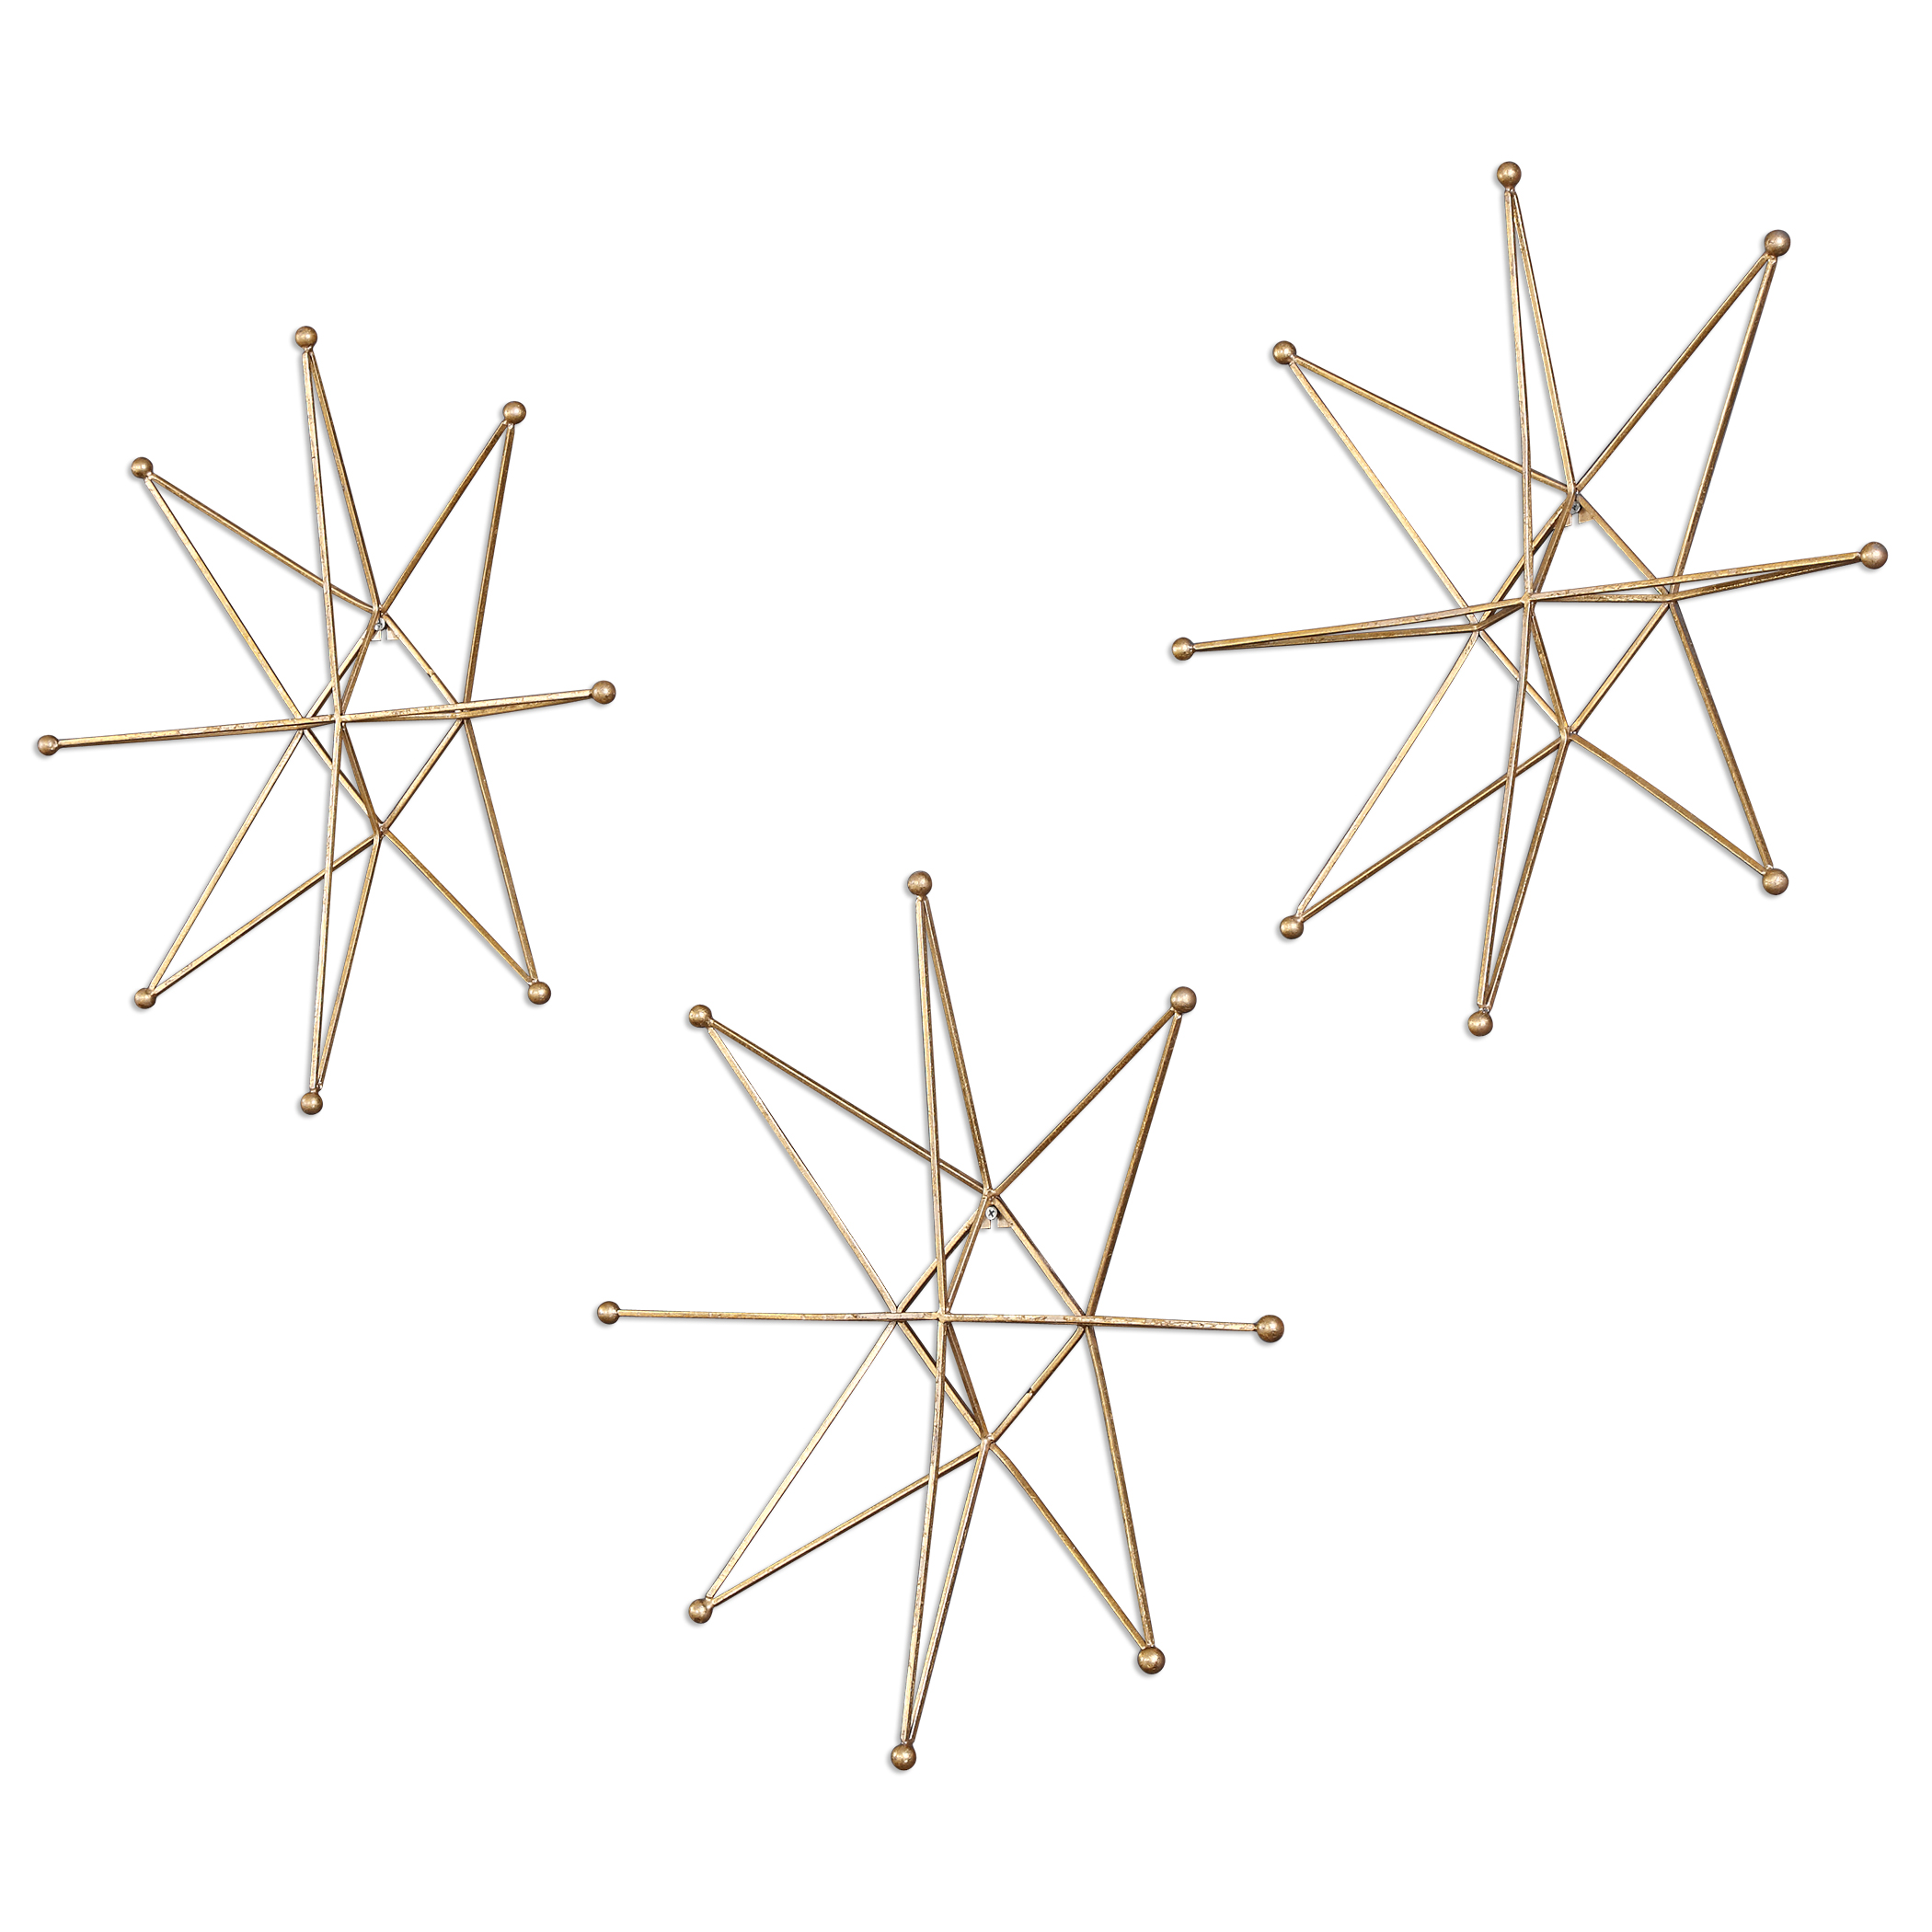 Uttermost Alternative Wall Decor Gold Stars Wall Art, S/3 - Item Number: 04035